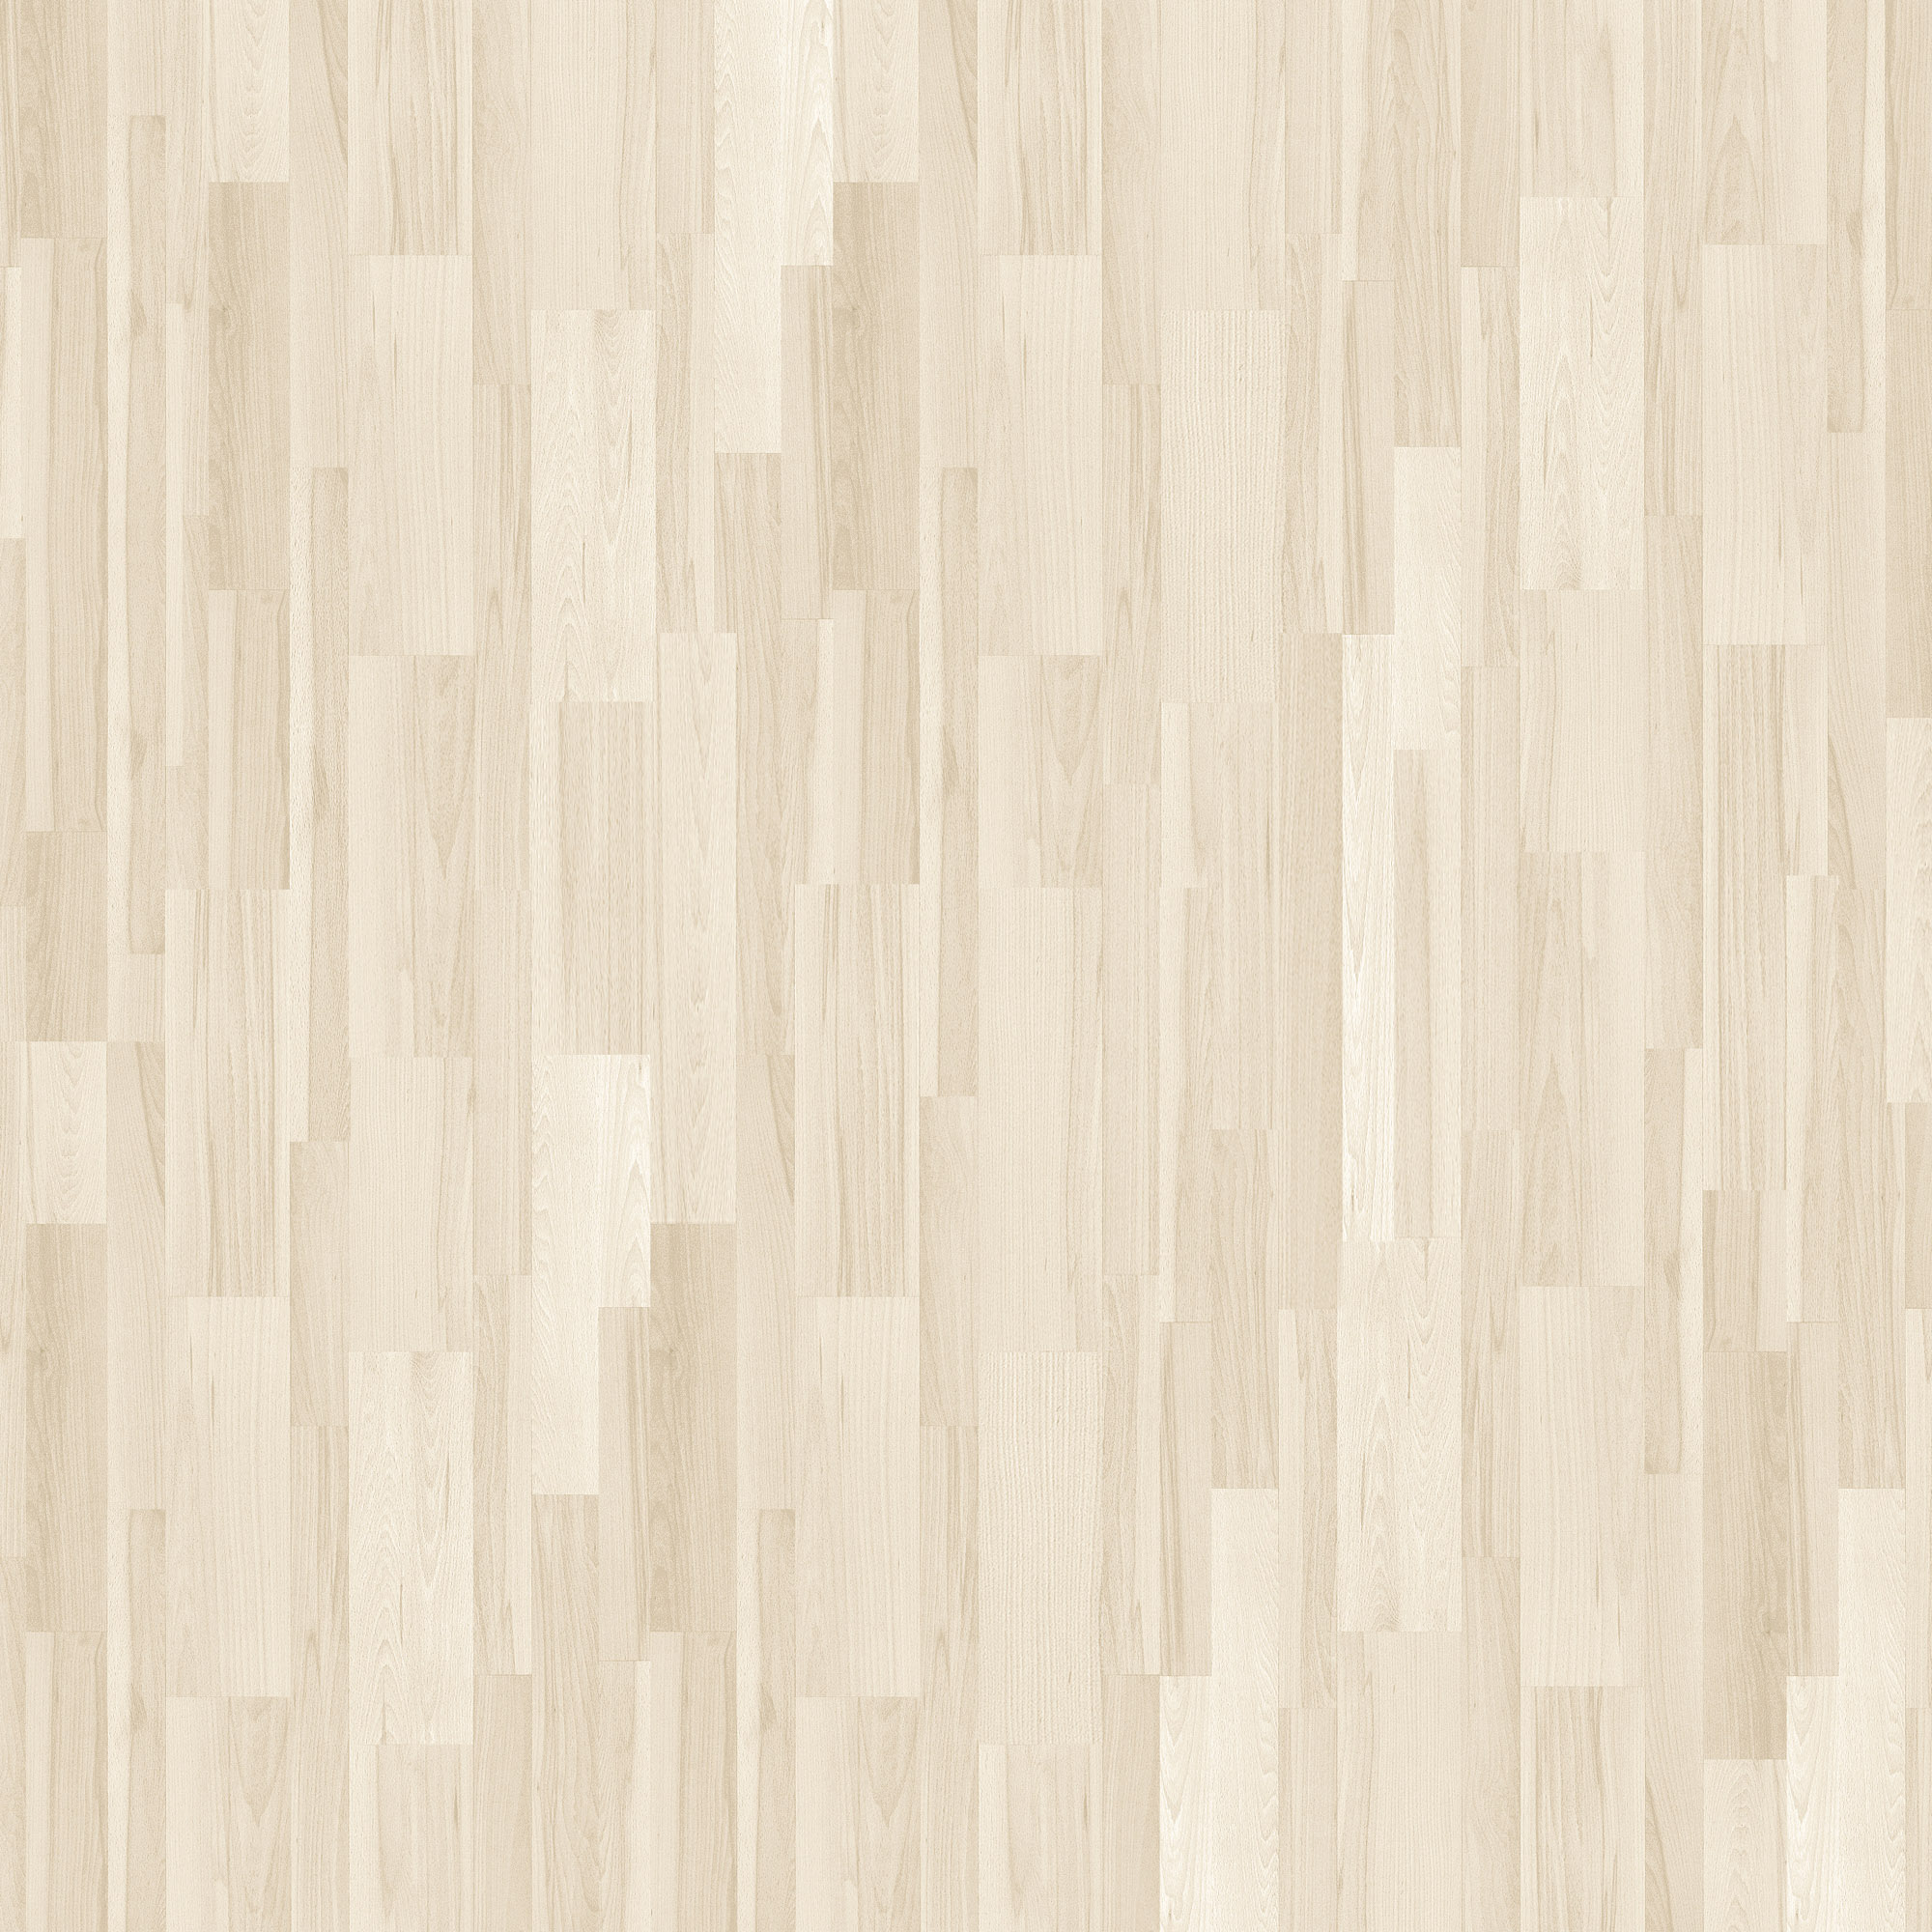 Wood planks white hardwood floor white hardwood floor jpg for Hardwood plank flooring